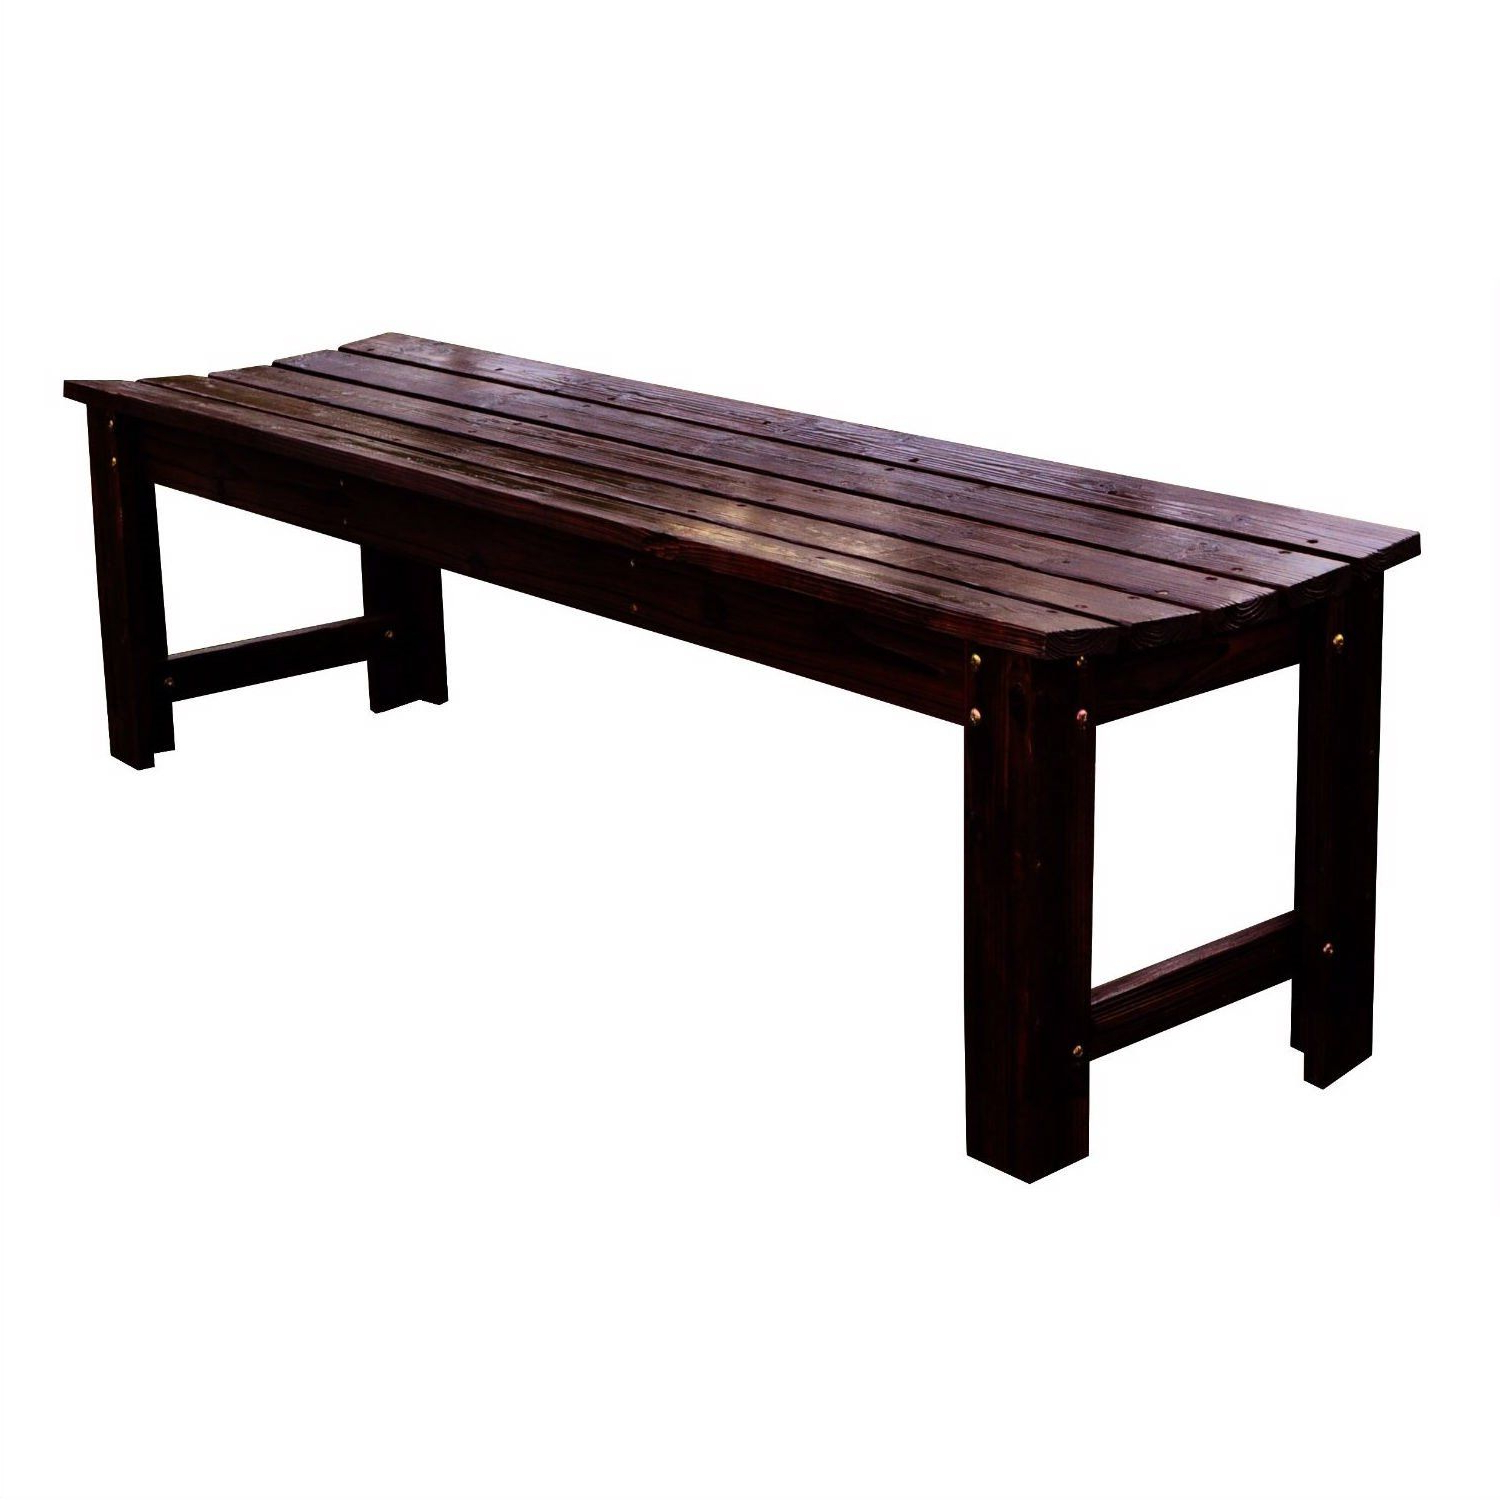 Well Liked 5 Feet Backless Outdoor Garden Patio Cedar Wood Bench In For Shelbie Wooden Garden Benches (View 29 of 30)